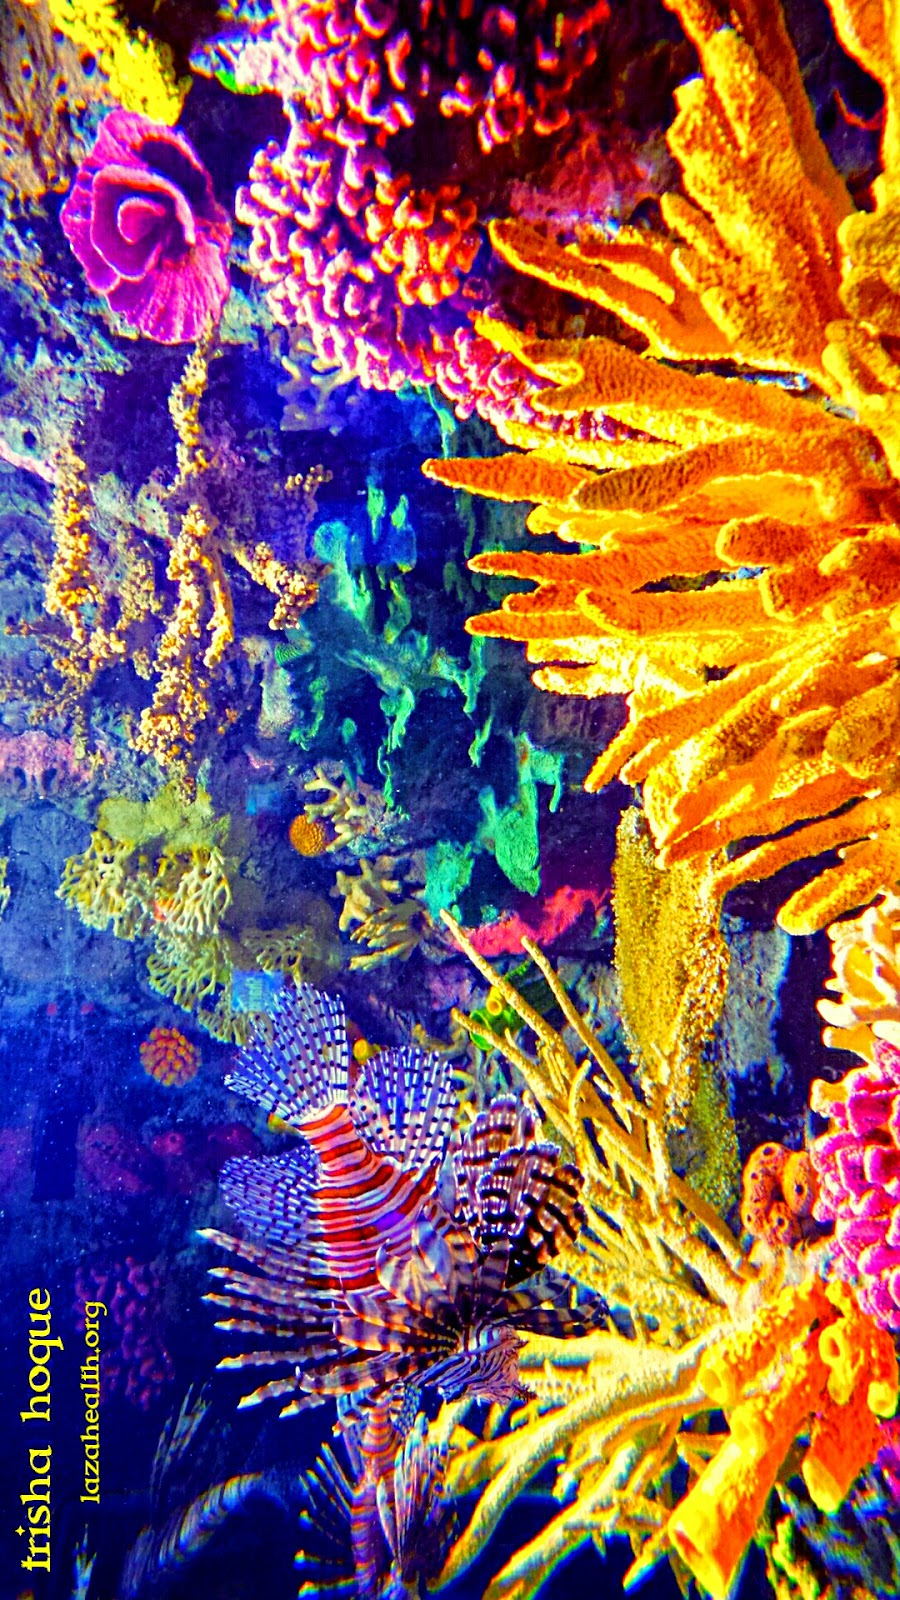 Nature paints the most beautiful masterpieces: Coral reefs 10 Most Beautiful Coral Reefs World